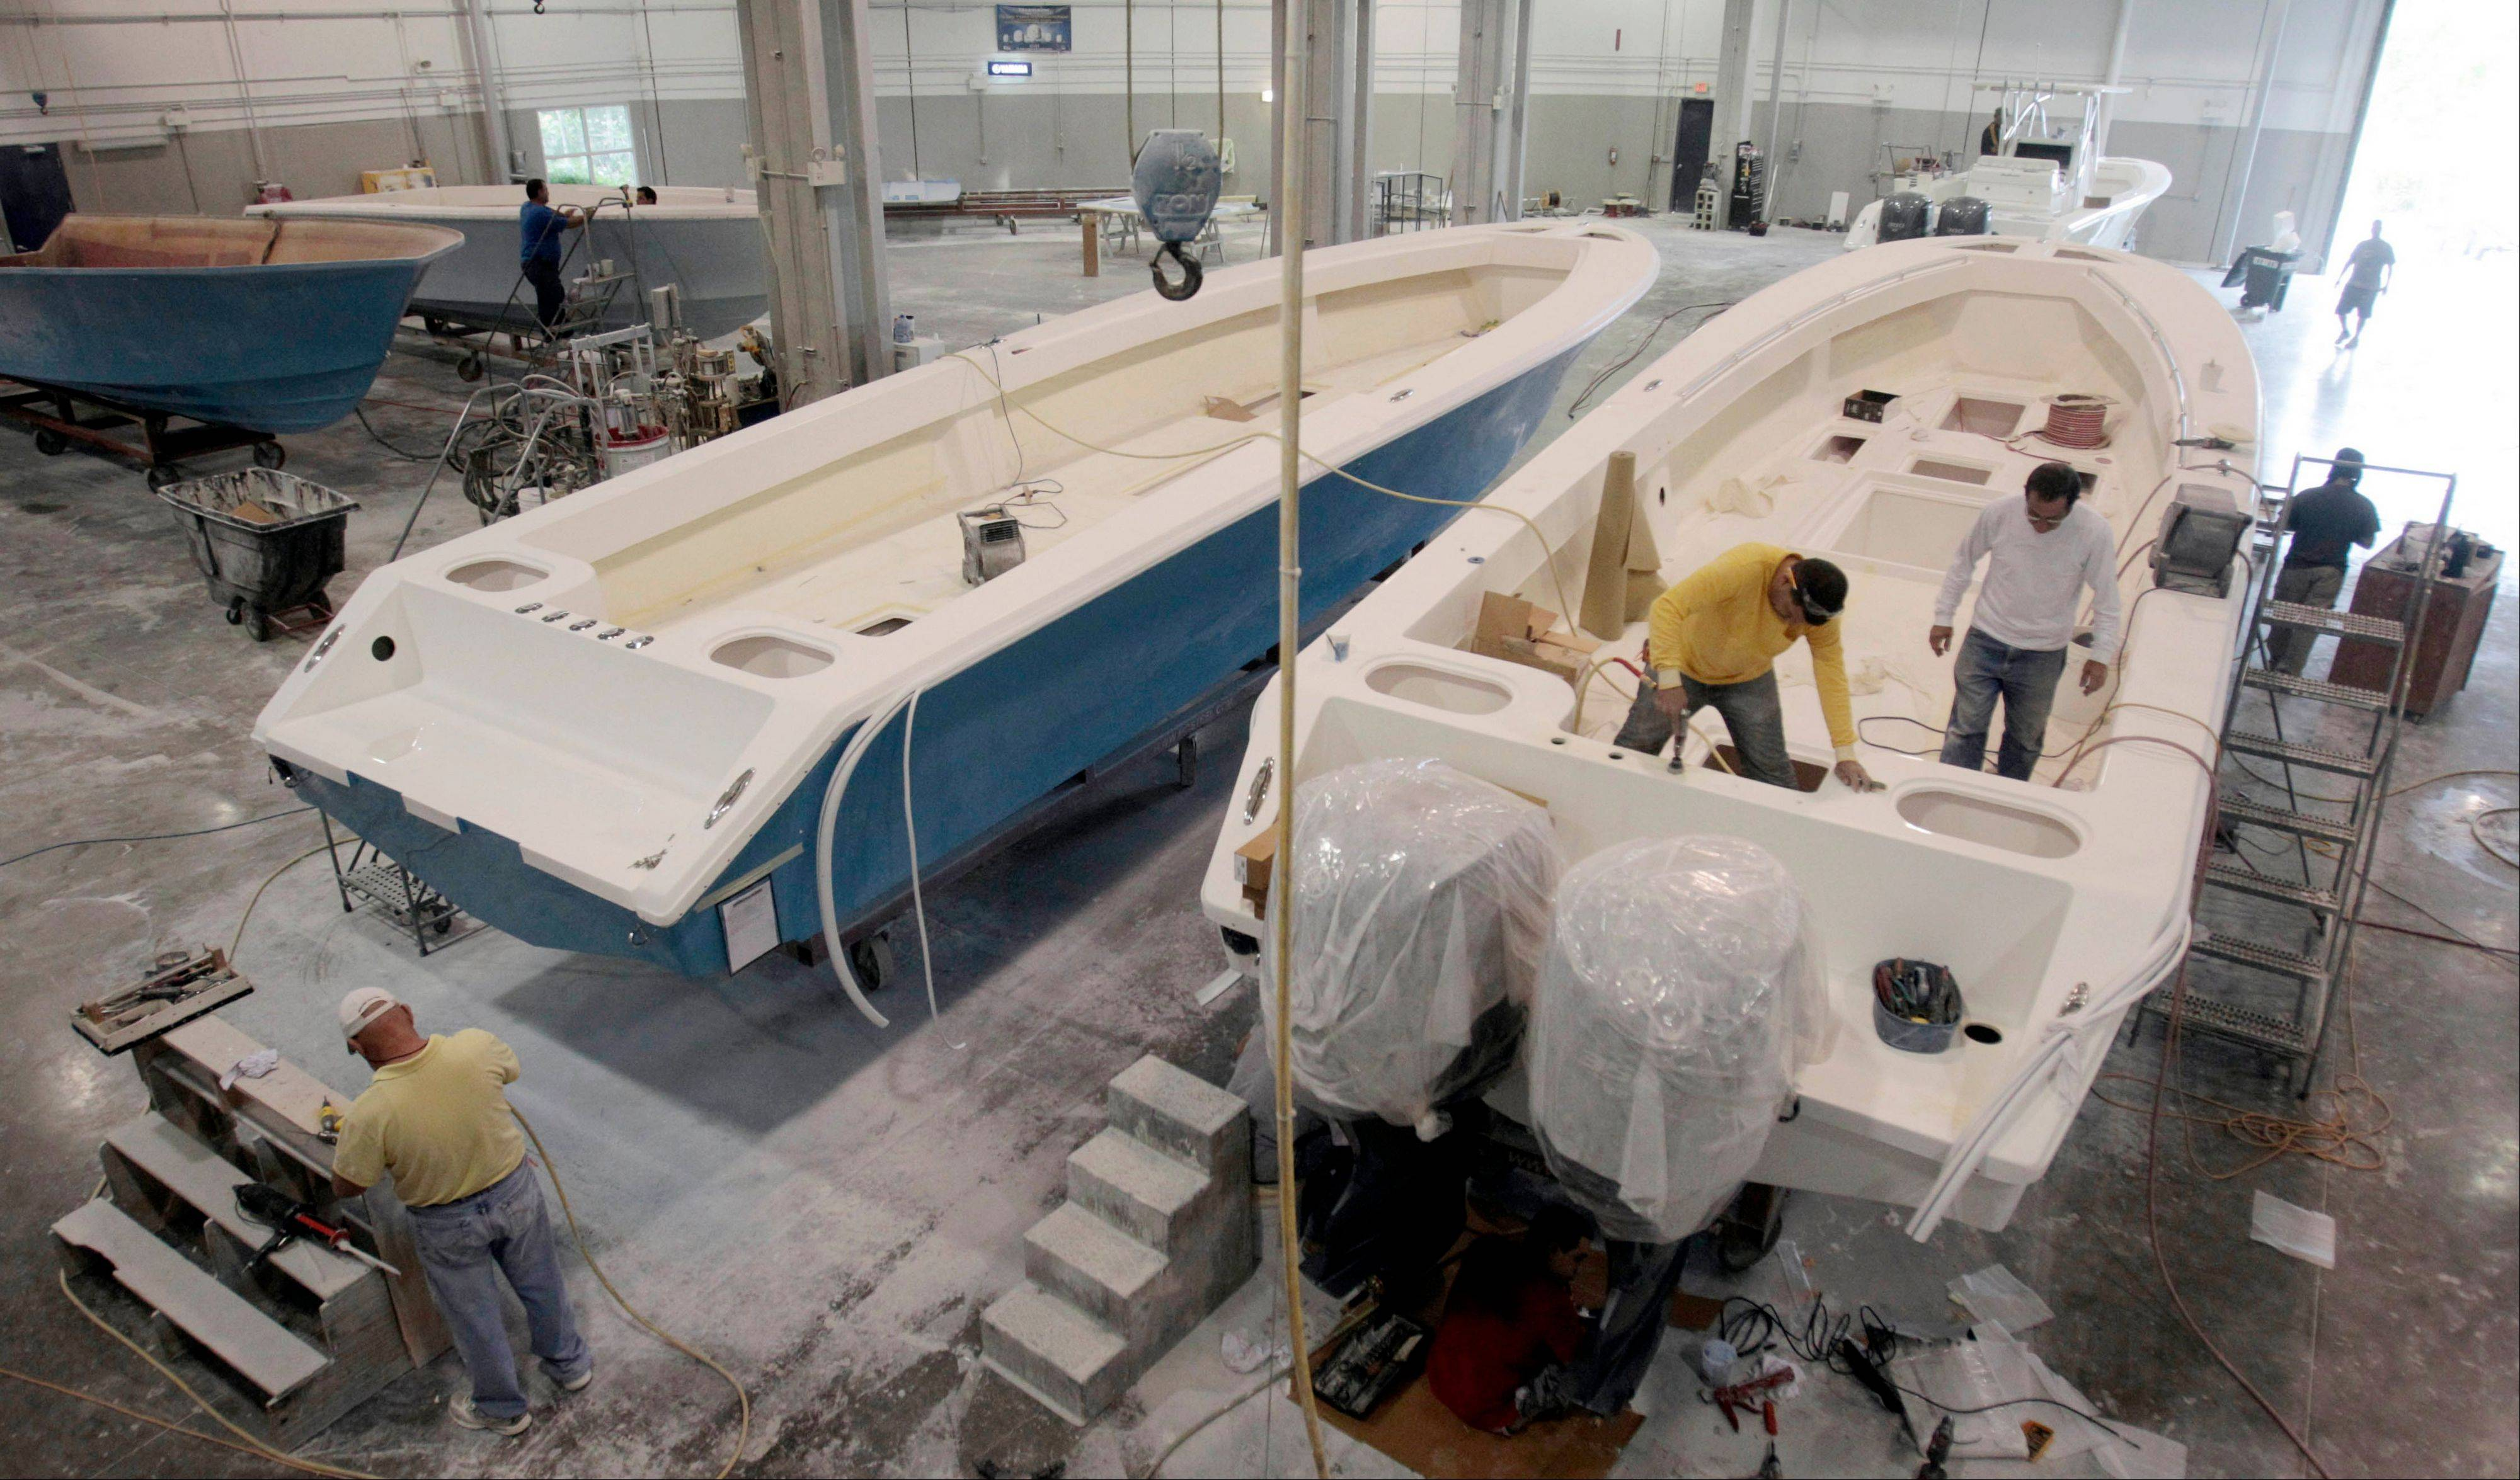 Boat builders work on SeaHunter hulls at SeaHunter Boats, for delivery in Princeton, Fla. Companies placed more orders with U.S. factories in May from April, demanding more computers, machinery and other equipment that signal investment plans.